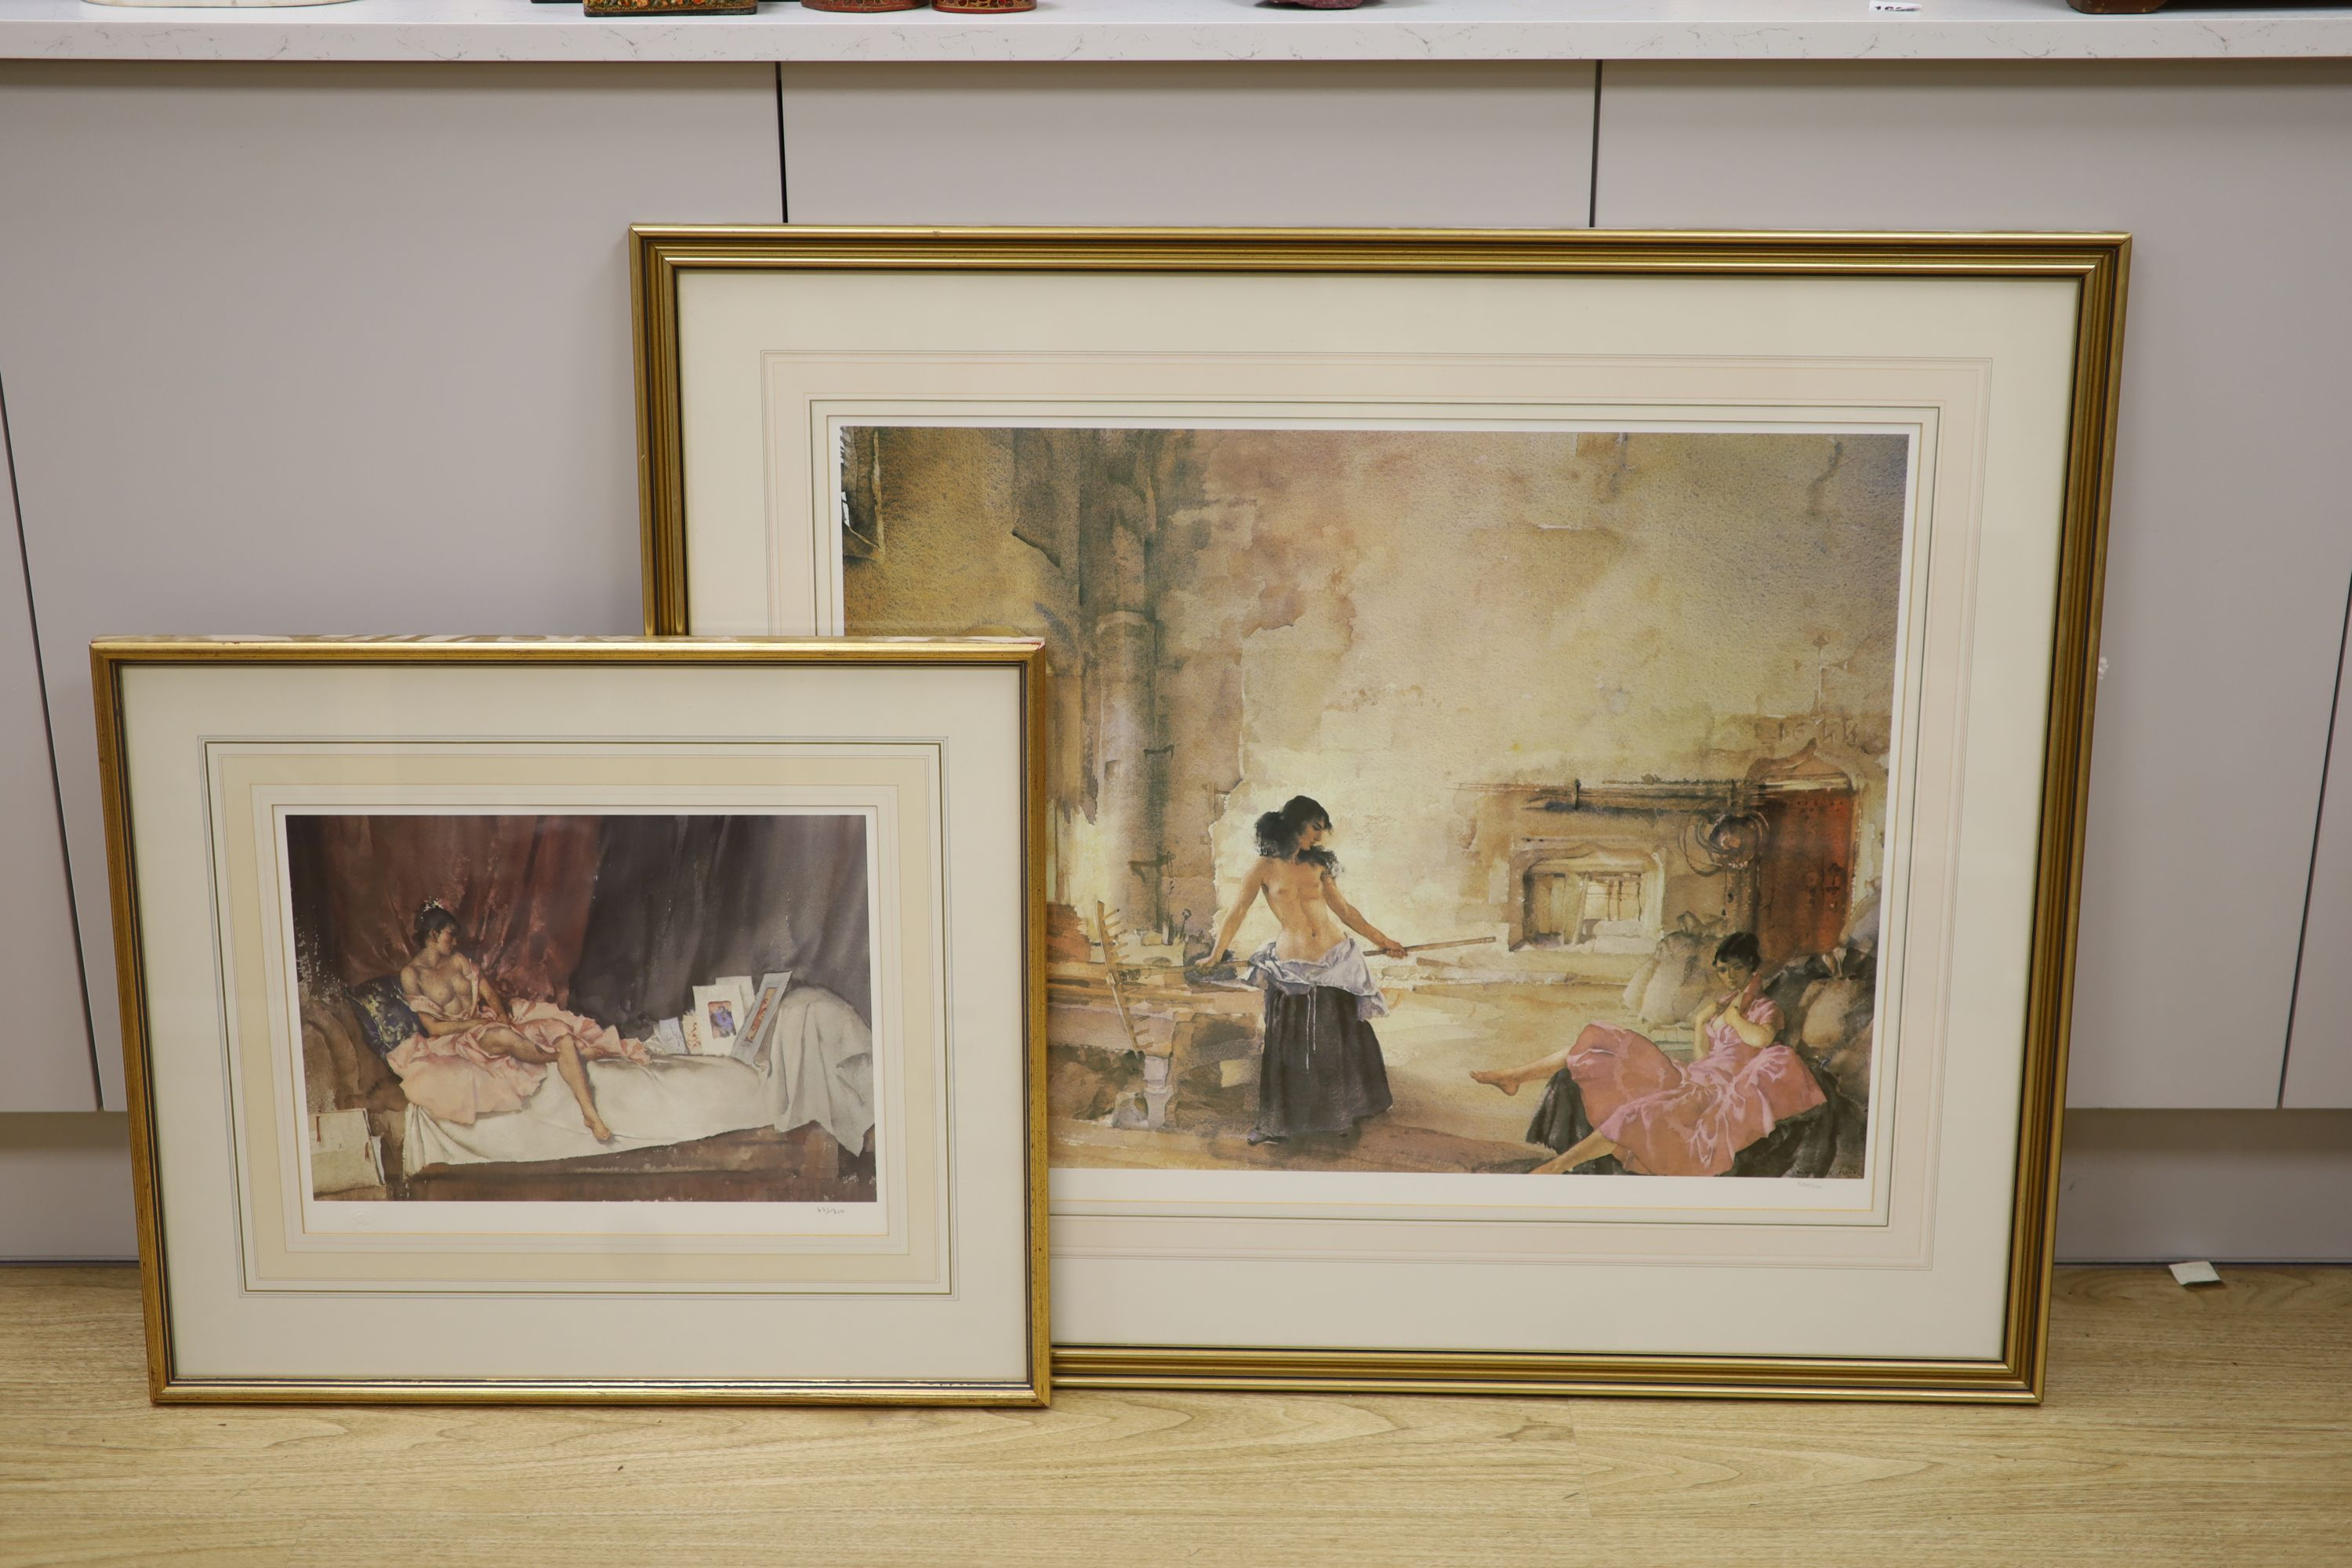 William Russell Flint, two limited edition prints, In a Burgundian Granary & Cecelia and her